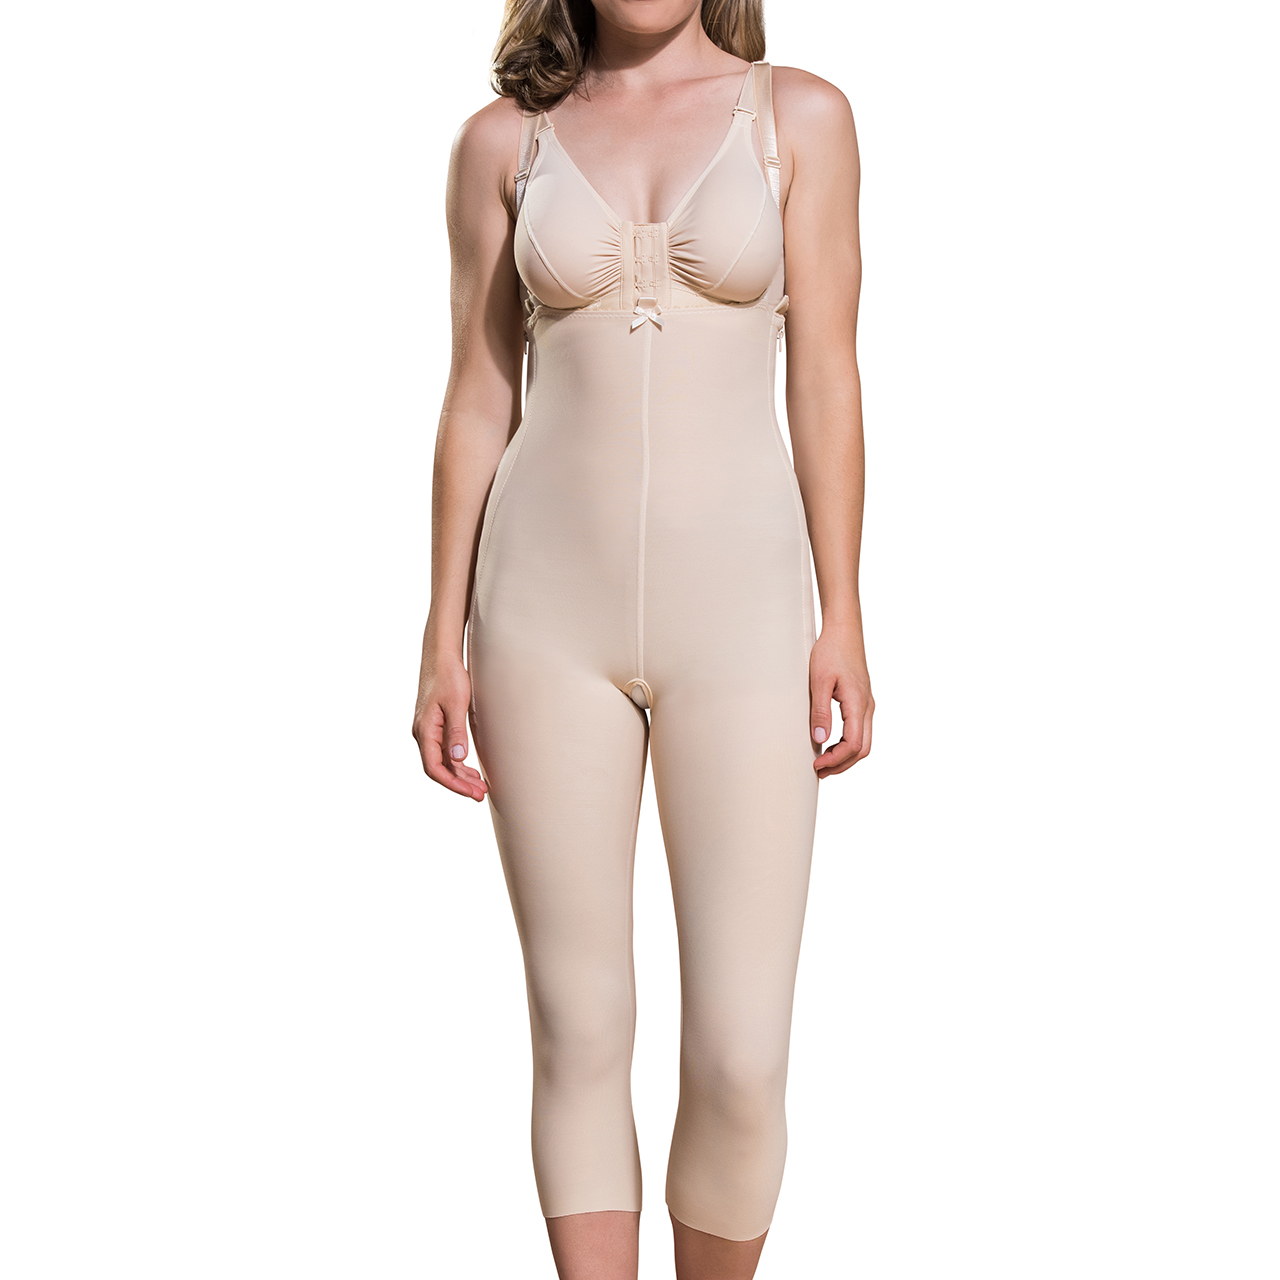 9eae283ea First Stage Suit with Suspenders and Medium Legs by Marena ...